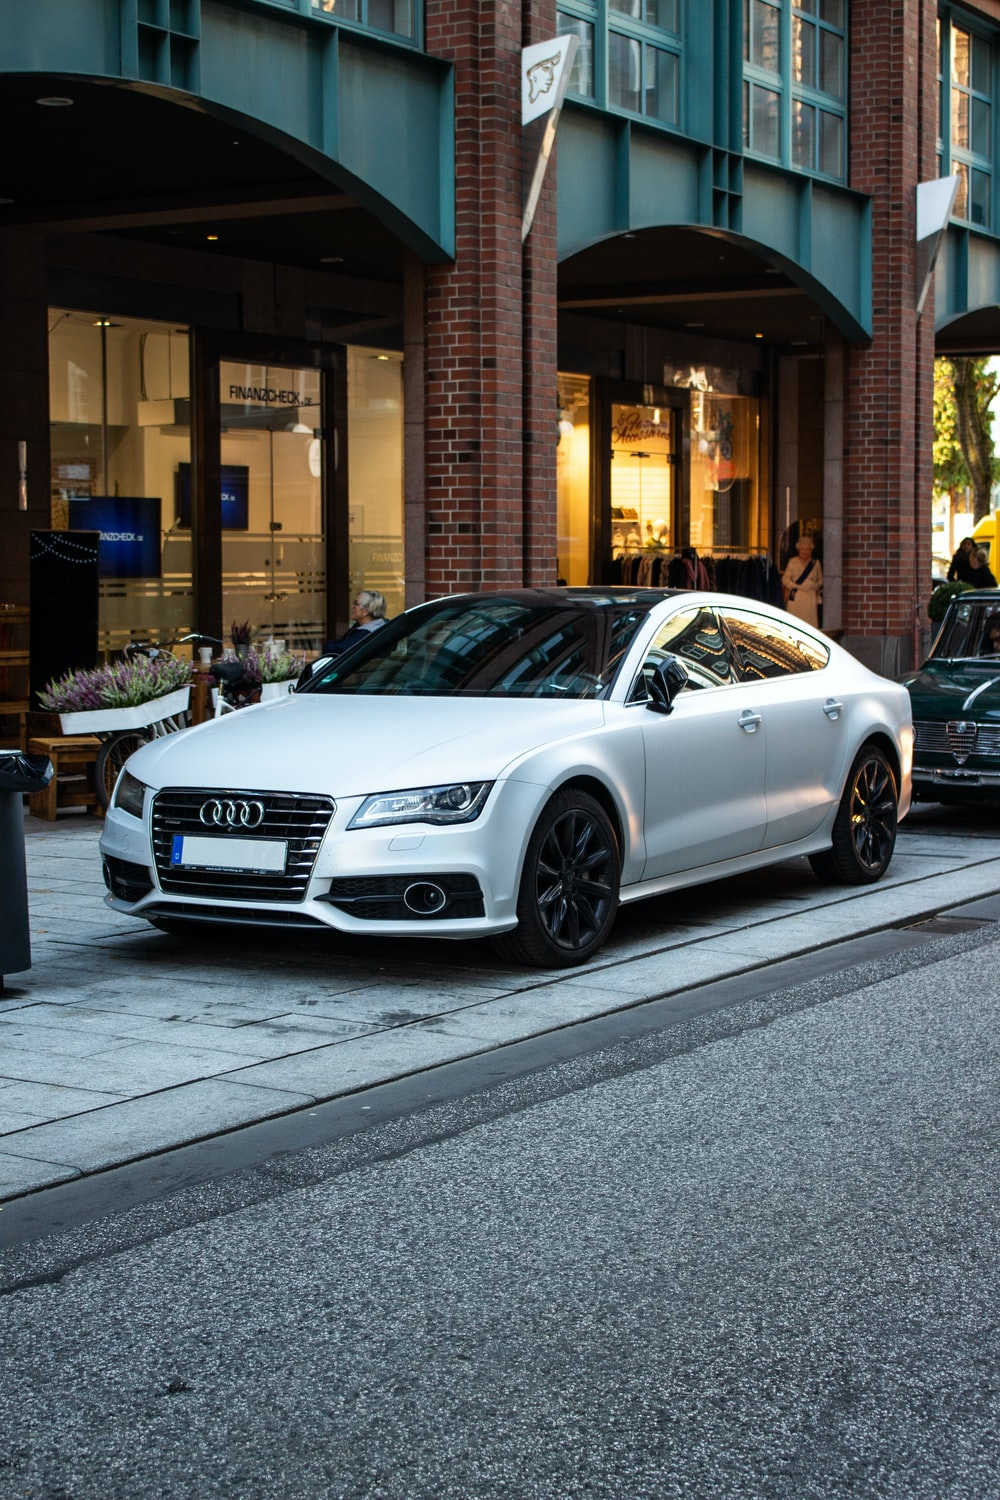 500+ Audi Pictures [HD] | Download Free Images on Unsplash